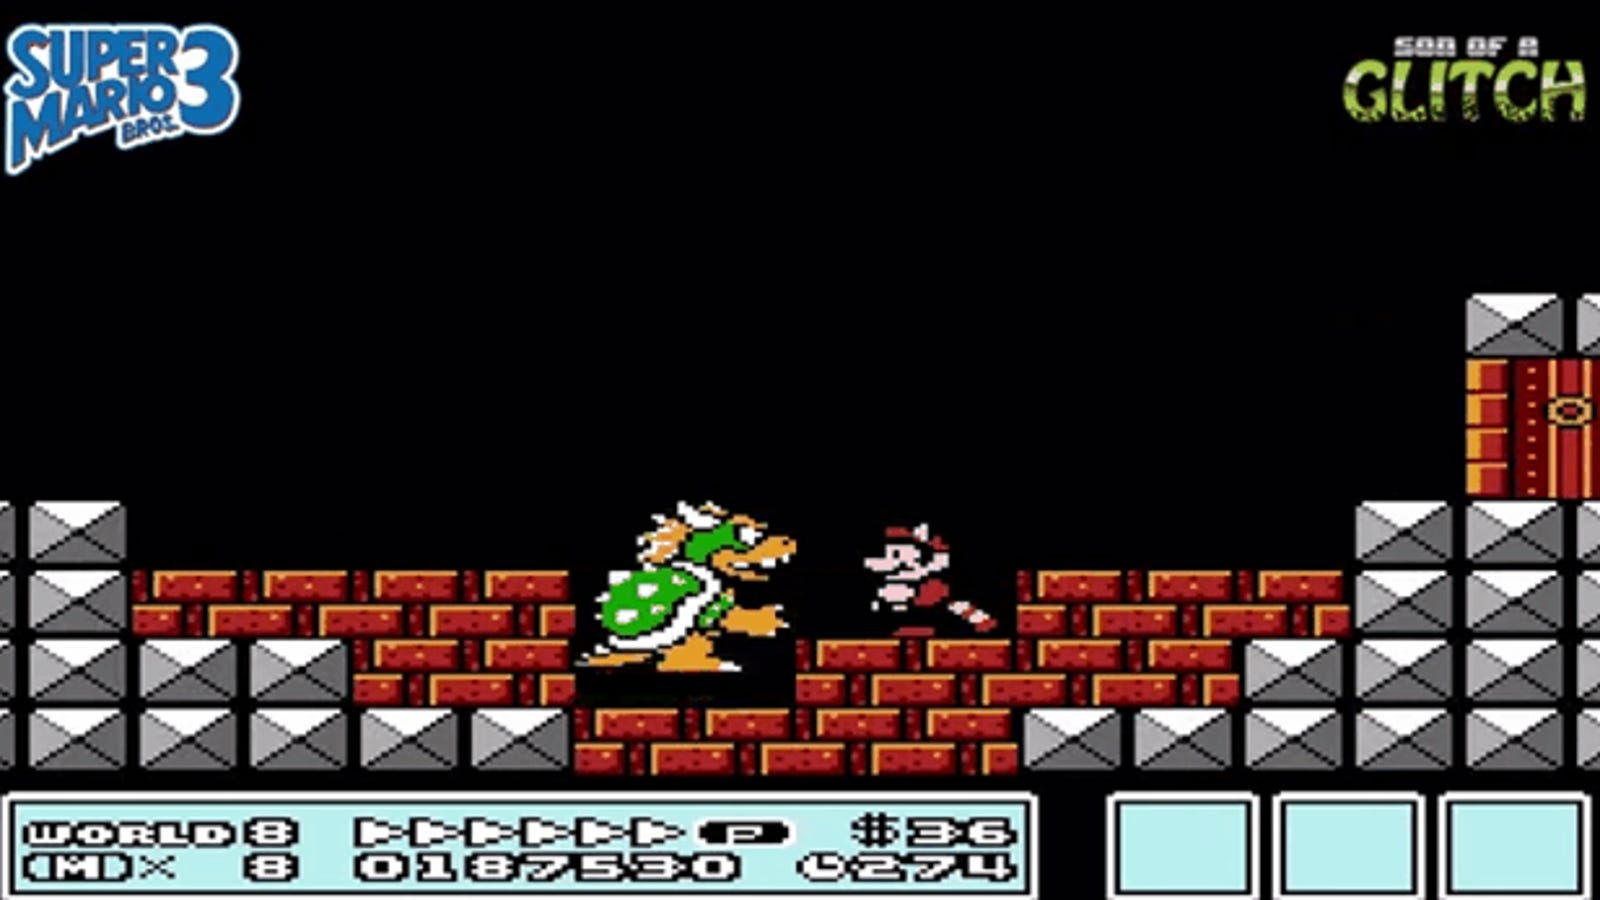 Twenty Super Mario Bros  3 Glitches You Might Not Know About